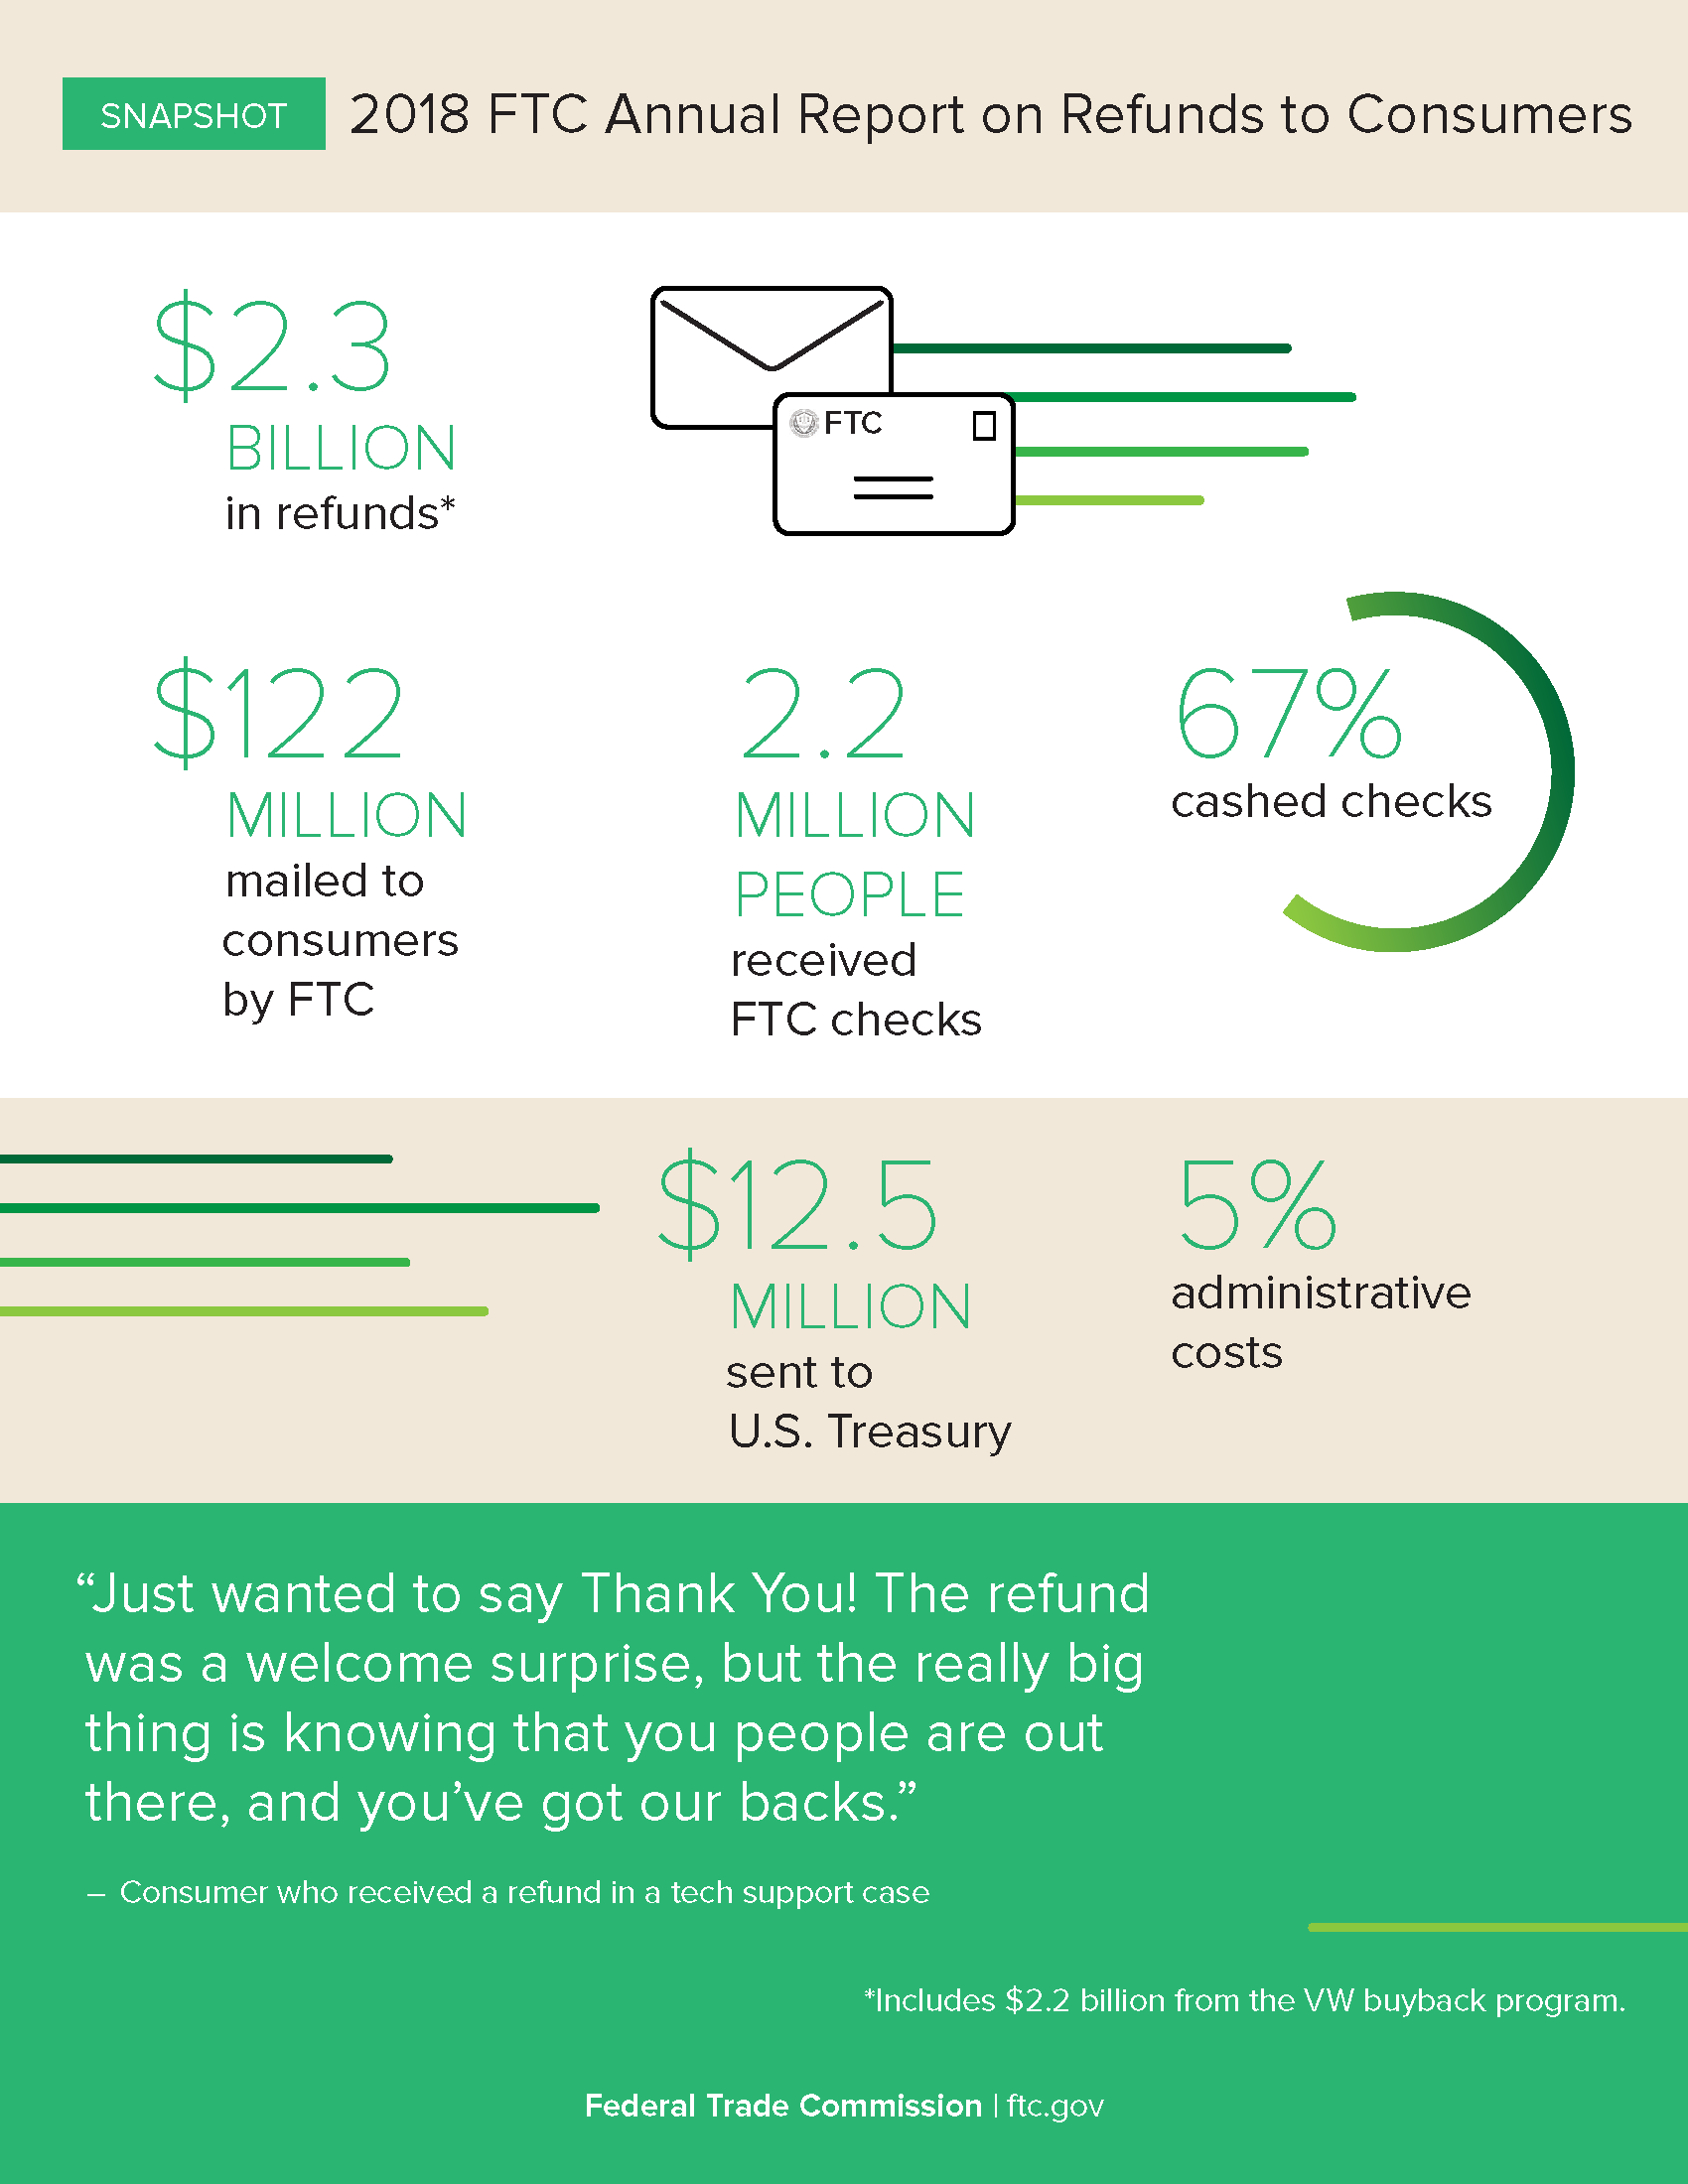 FTC Office of Claims and Refunds Annual Report 2018 snapshot